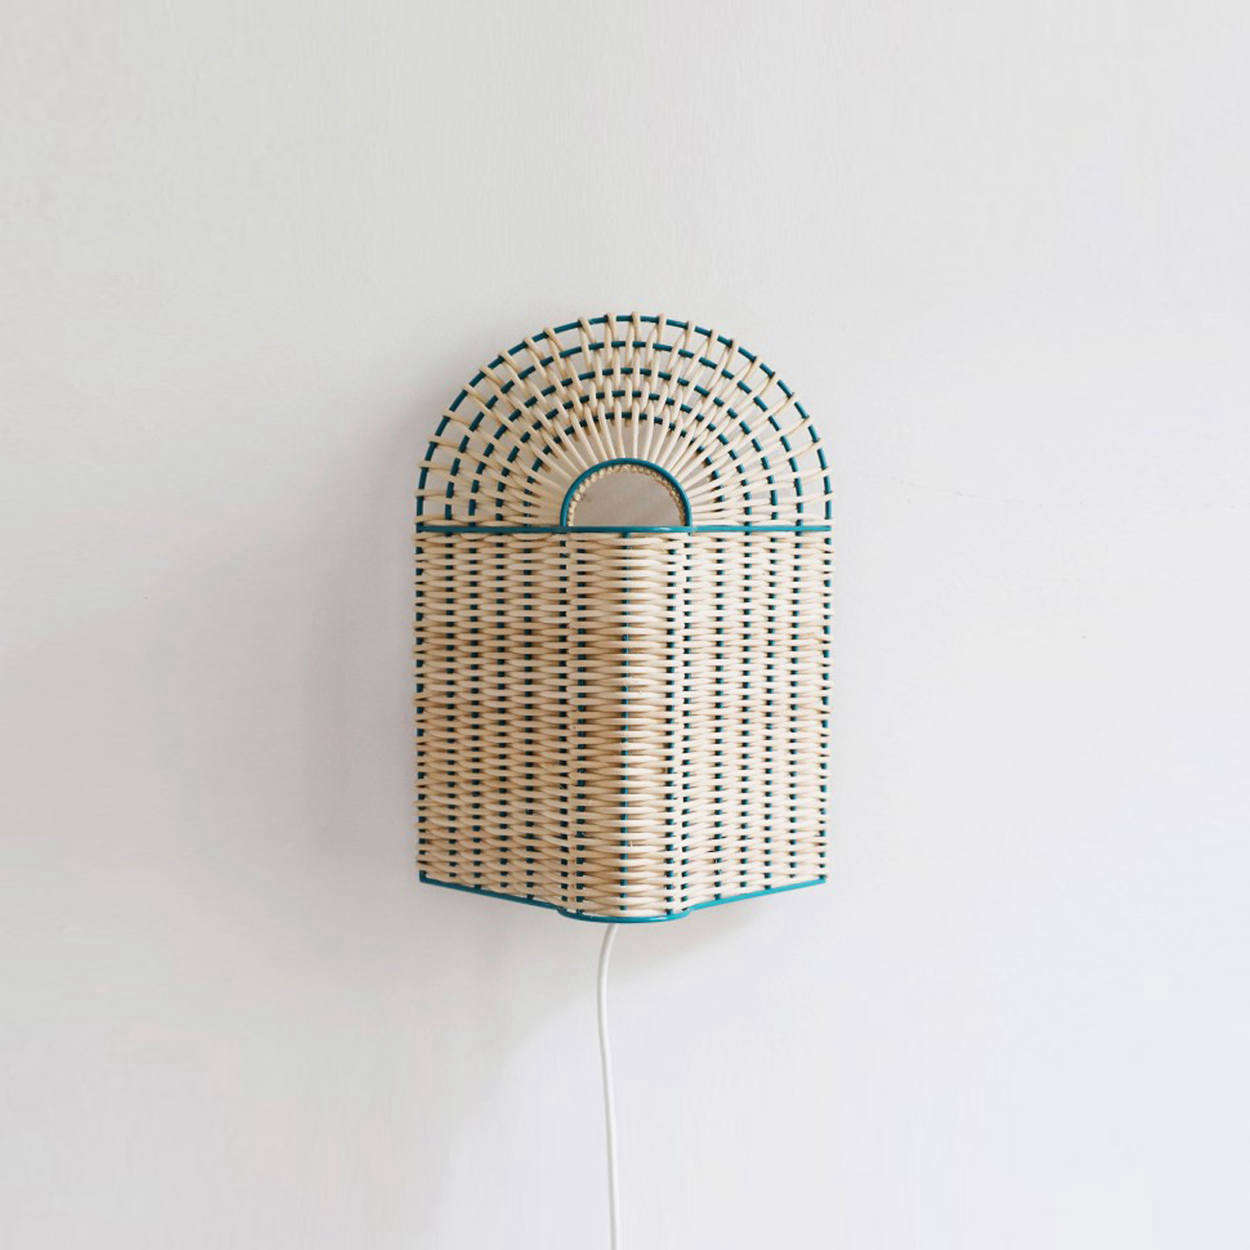 The Paon Small Lamp in Natural Rattan with green lacquered metal is €9.